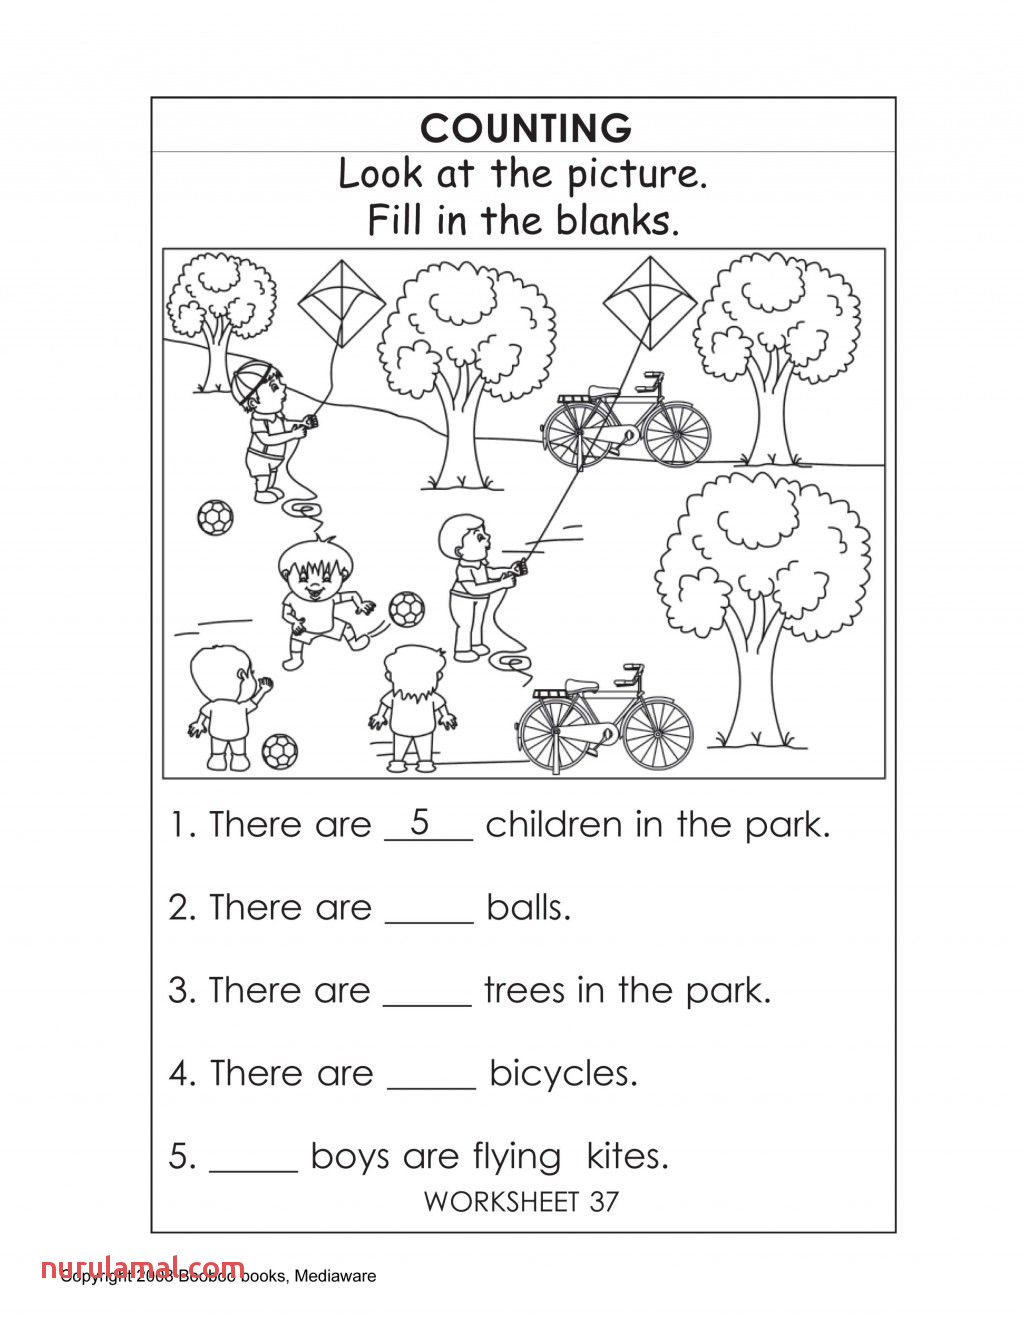 Printable Counting Worksheet Printout